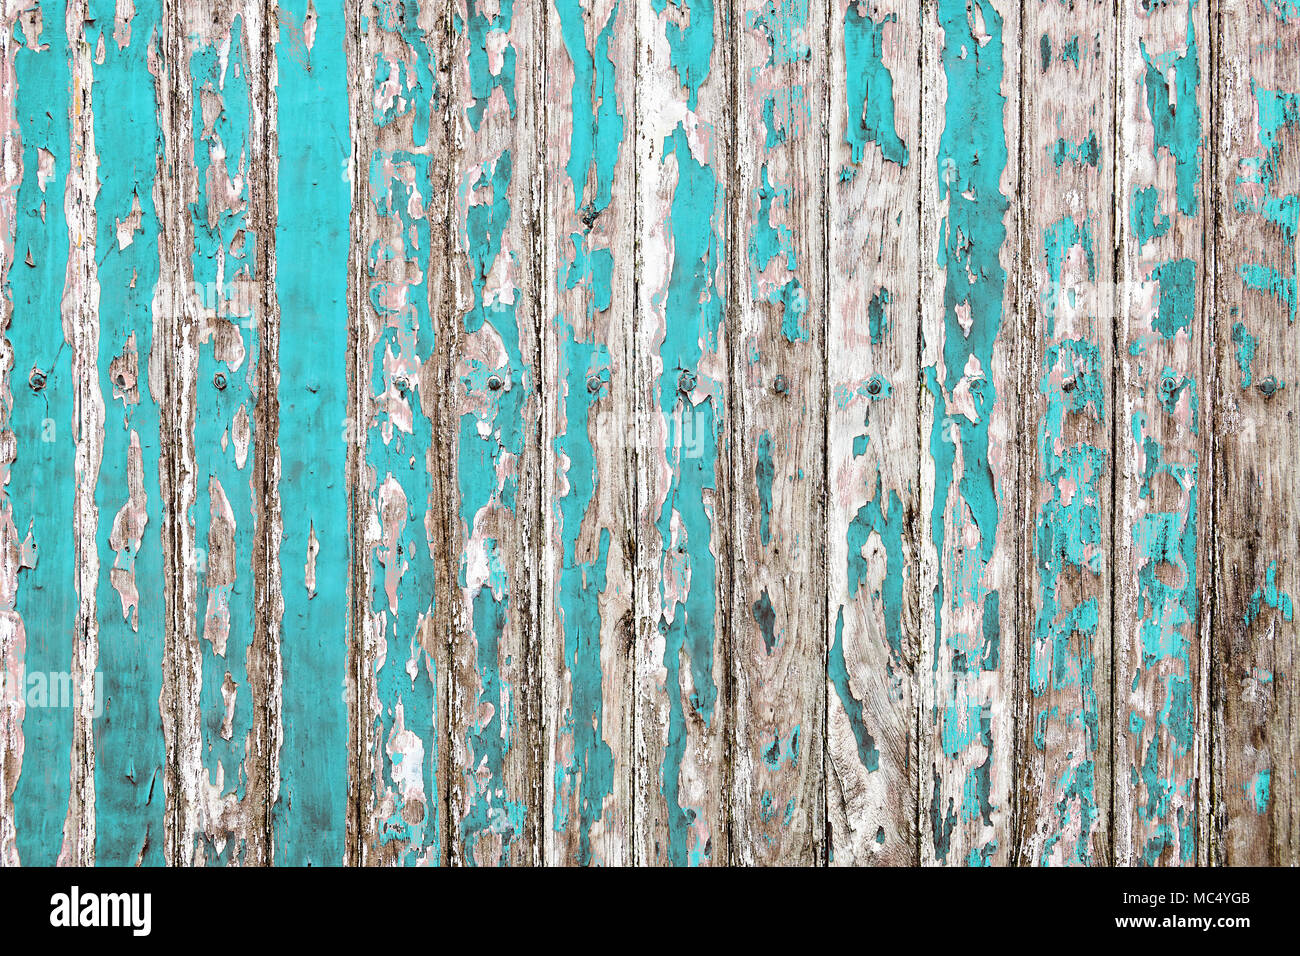 The Old Wooden Wall Painted With Cyan Color Cracking Peeling And Revealed Spike Nail Rustic Wood Texture